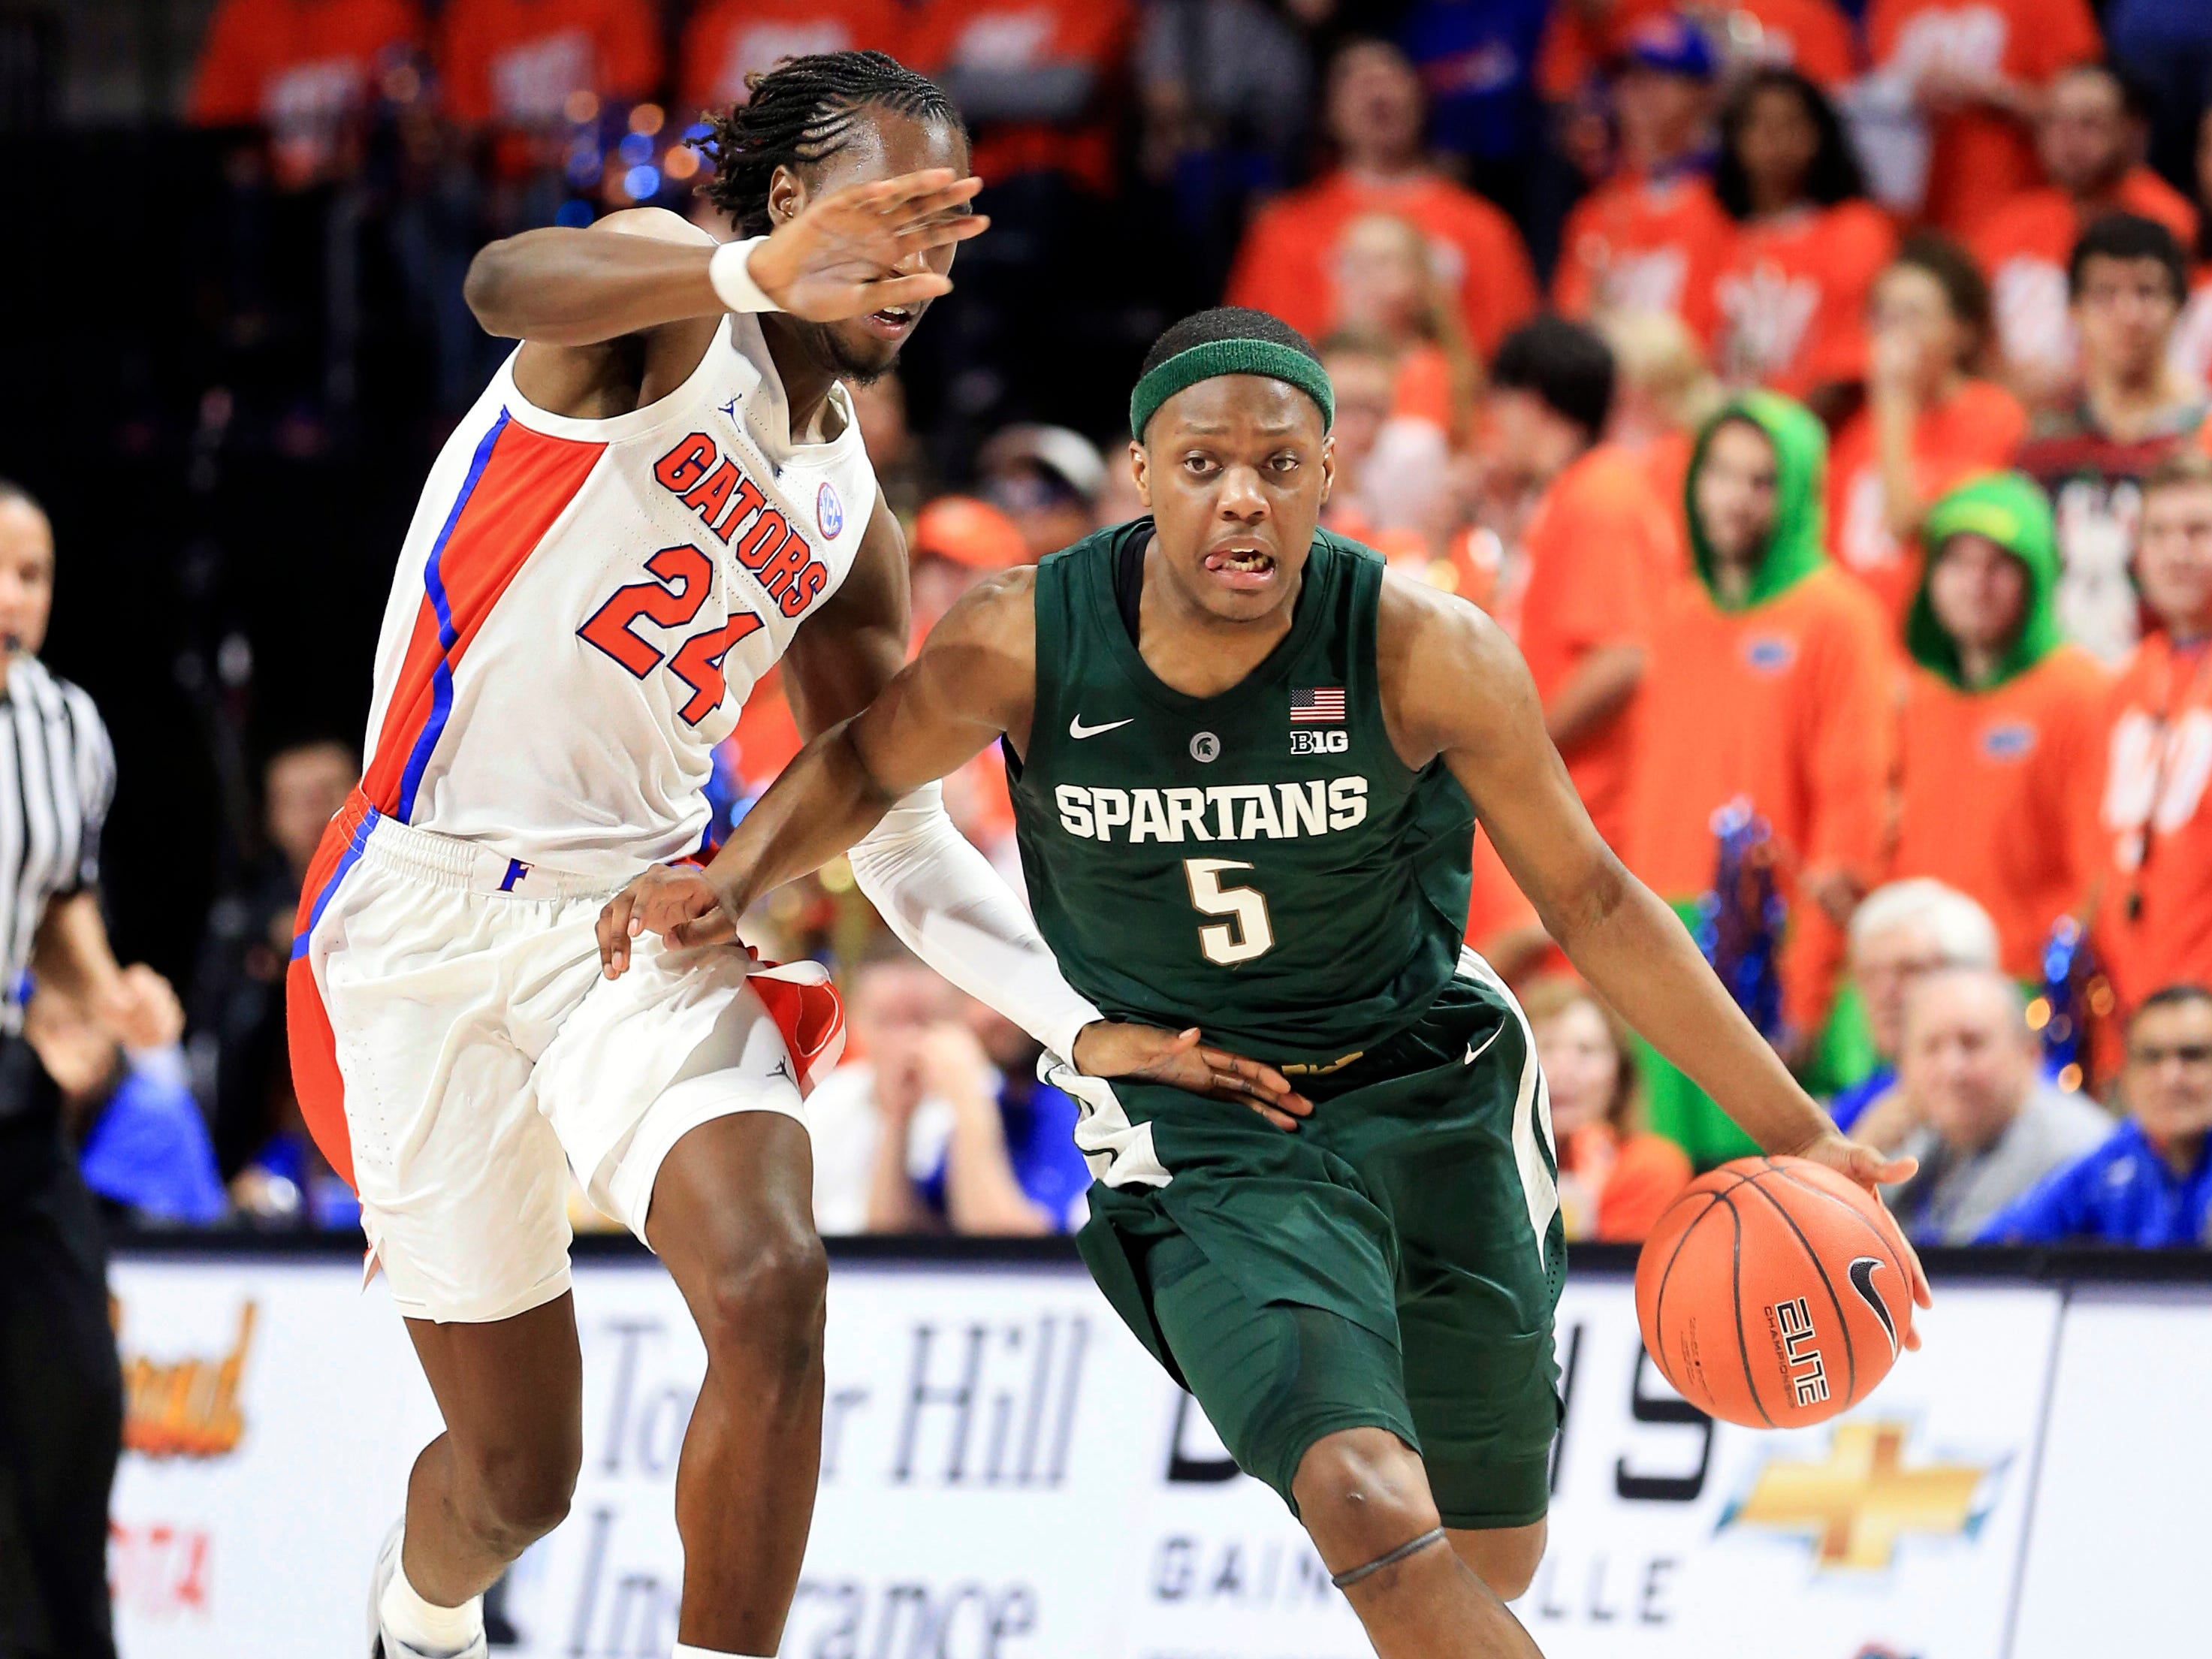 Michigan State guard Cassius Winston (5) dribbles up court past Florida guard Deaundrae Ballard (24) during the first half.